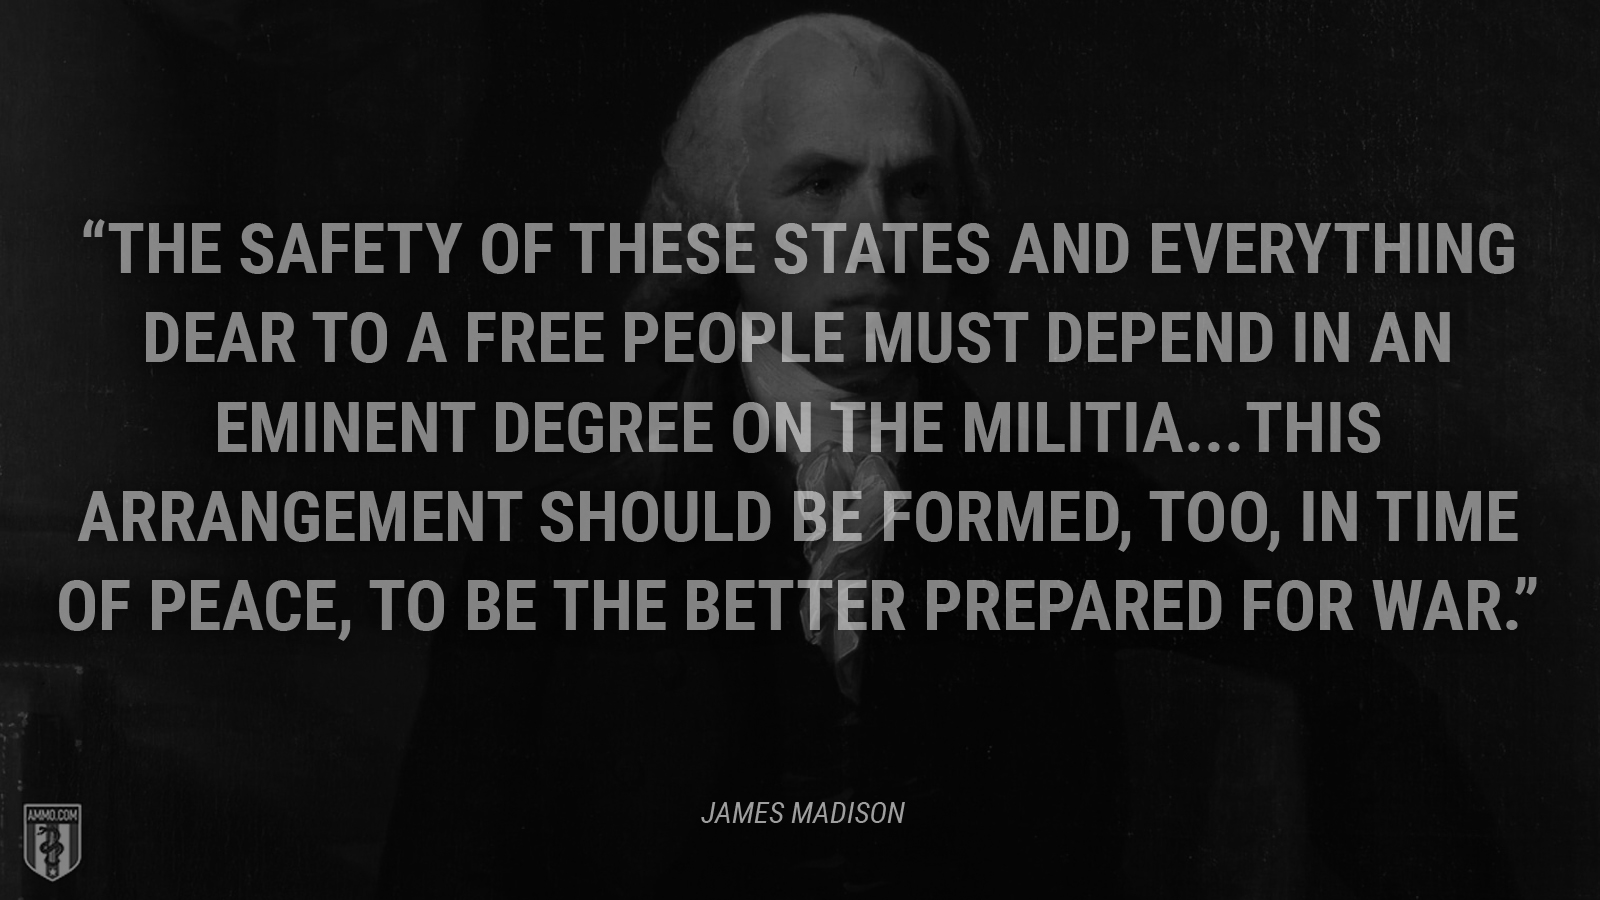 """The safety of these States and everything dear to a free people must depend in an eminent degree on the militia...This arrangement should be formed, too, in time of peace, to be the better prepared for war."" - James Madison"